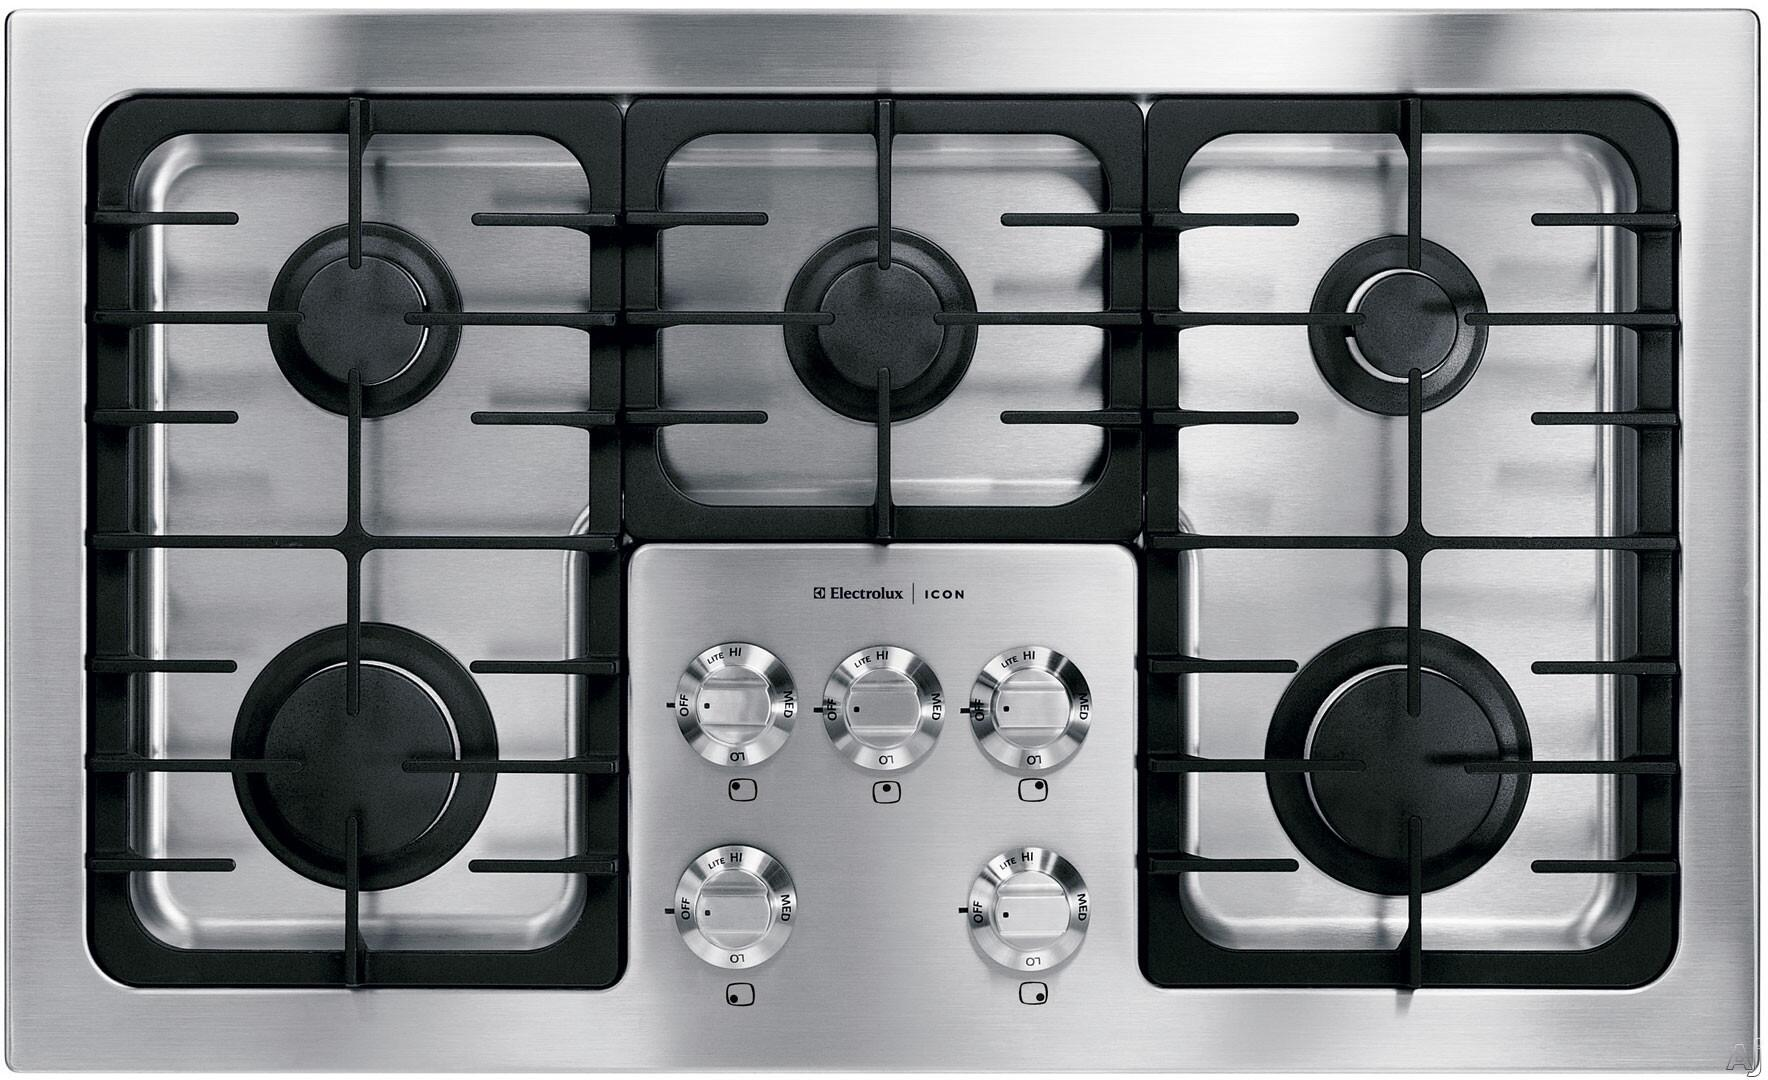 electrolux icon e36gc70fss designer series gas sealed burner style cooktop in stainless steel. Black Bedroom Furniture Sets. Home Design Ideas